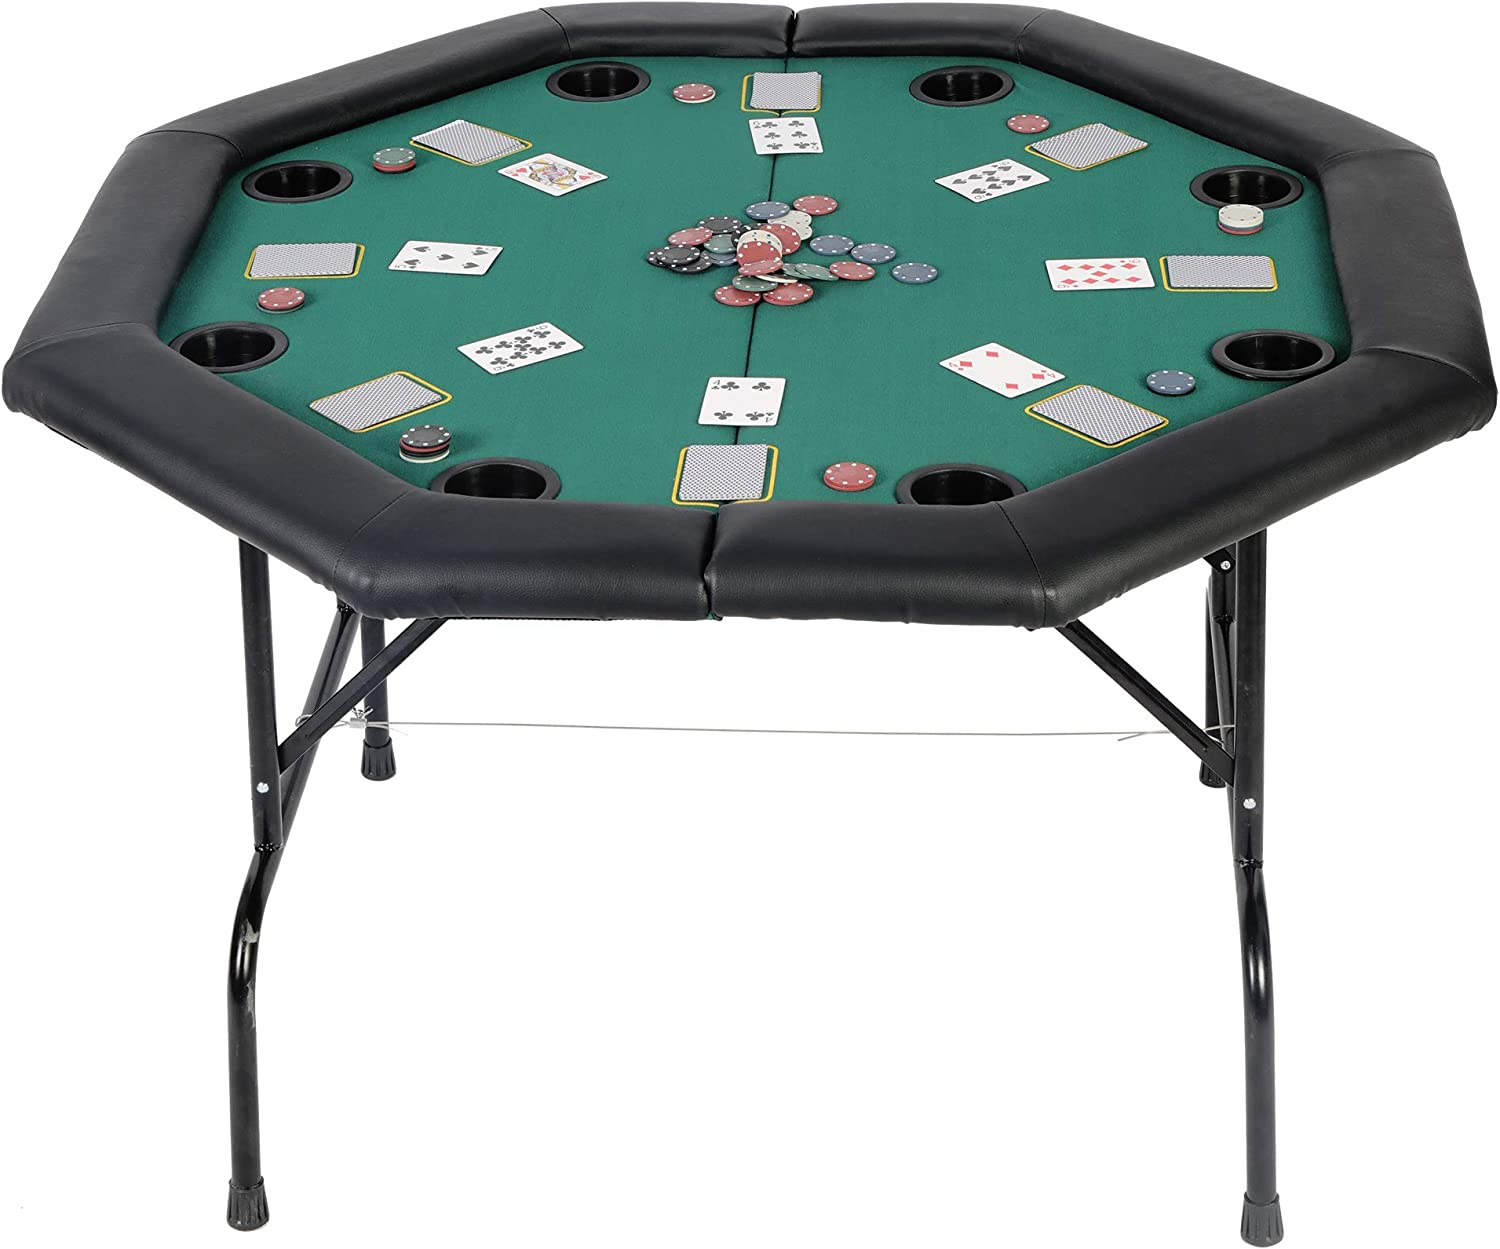 KARMAS PRODUCT Poker Table Folding Texas Holdem Casino Leisure Game  Octagonal Table with Cup Holder 9 Player -Green